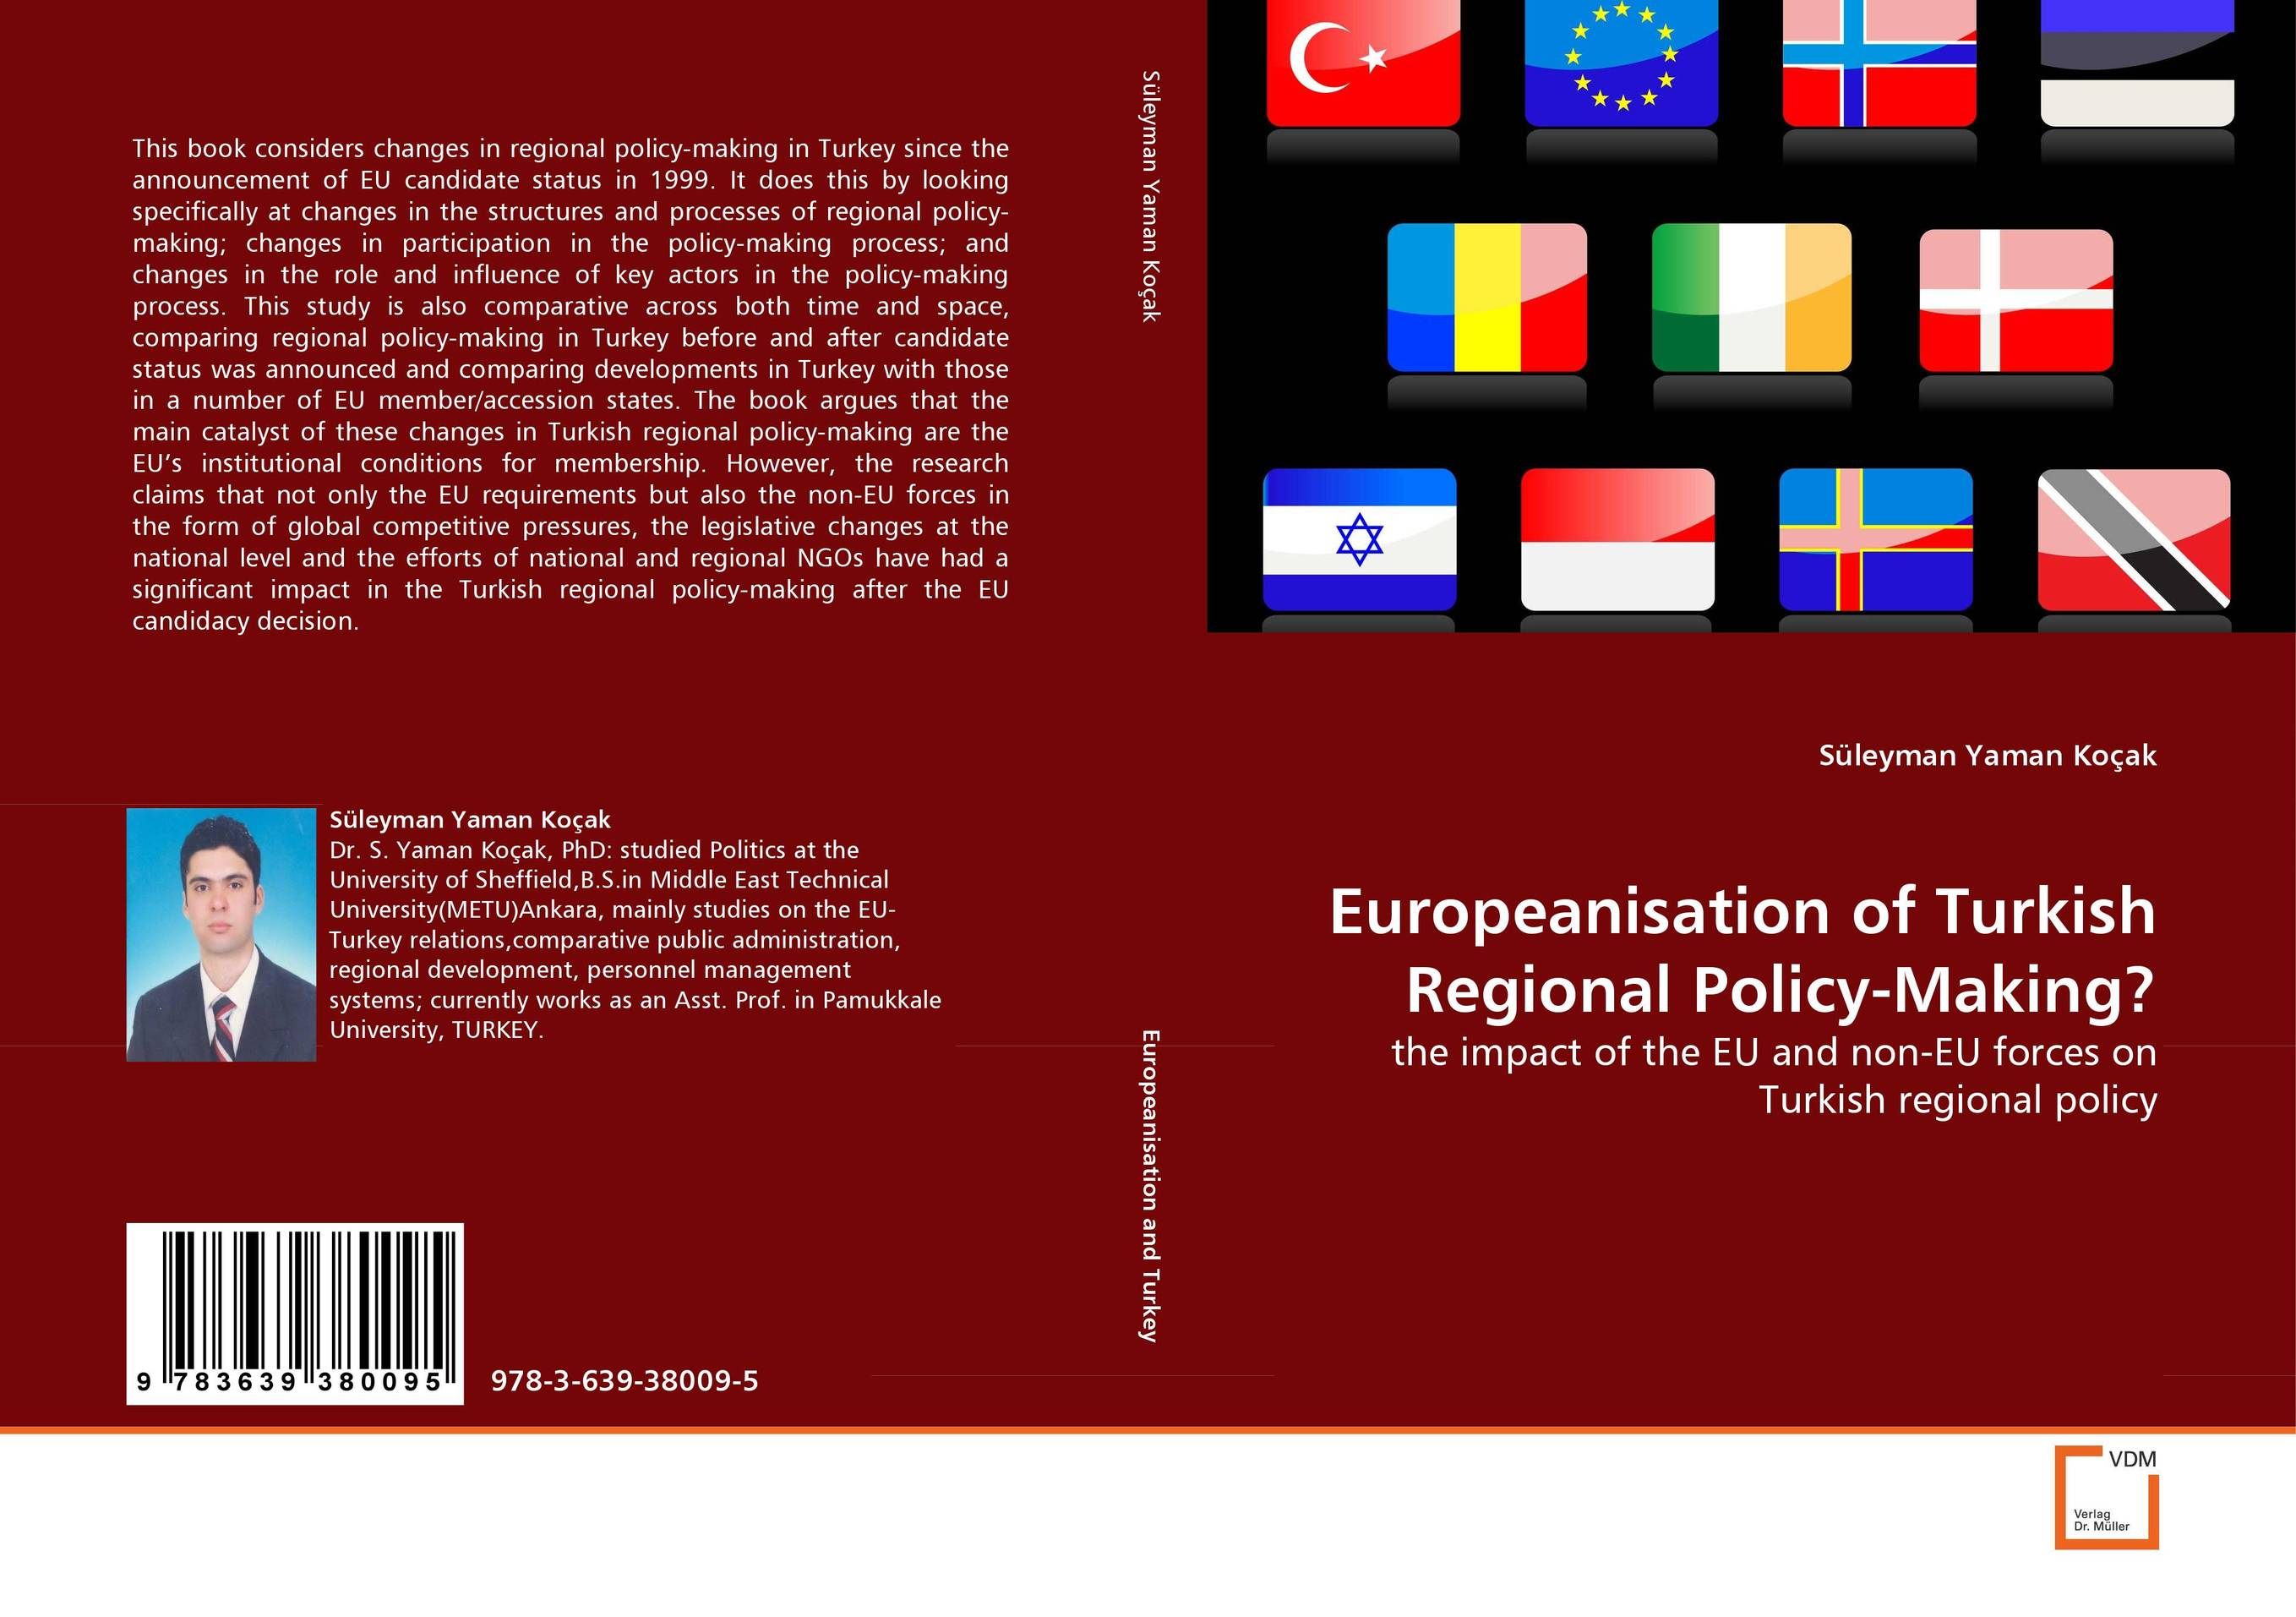 Europeanisation of Turkish Regional Policy-Making?